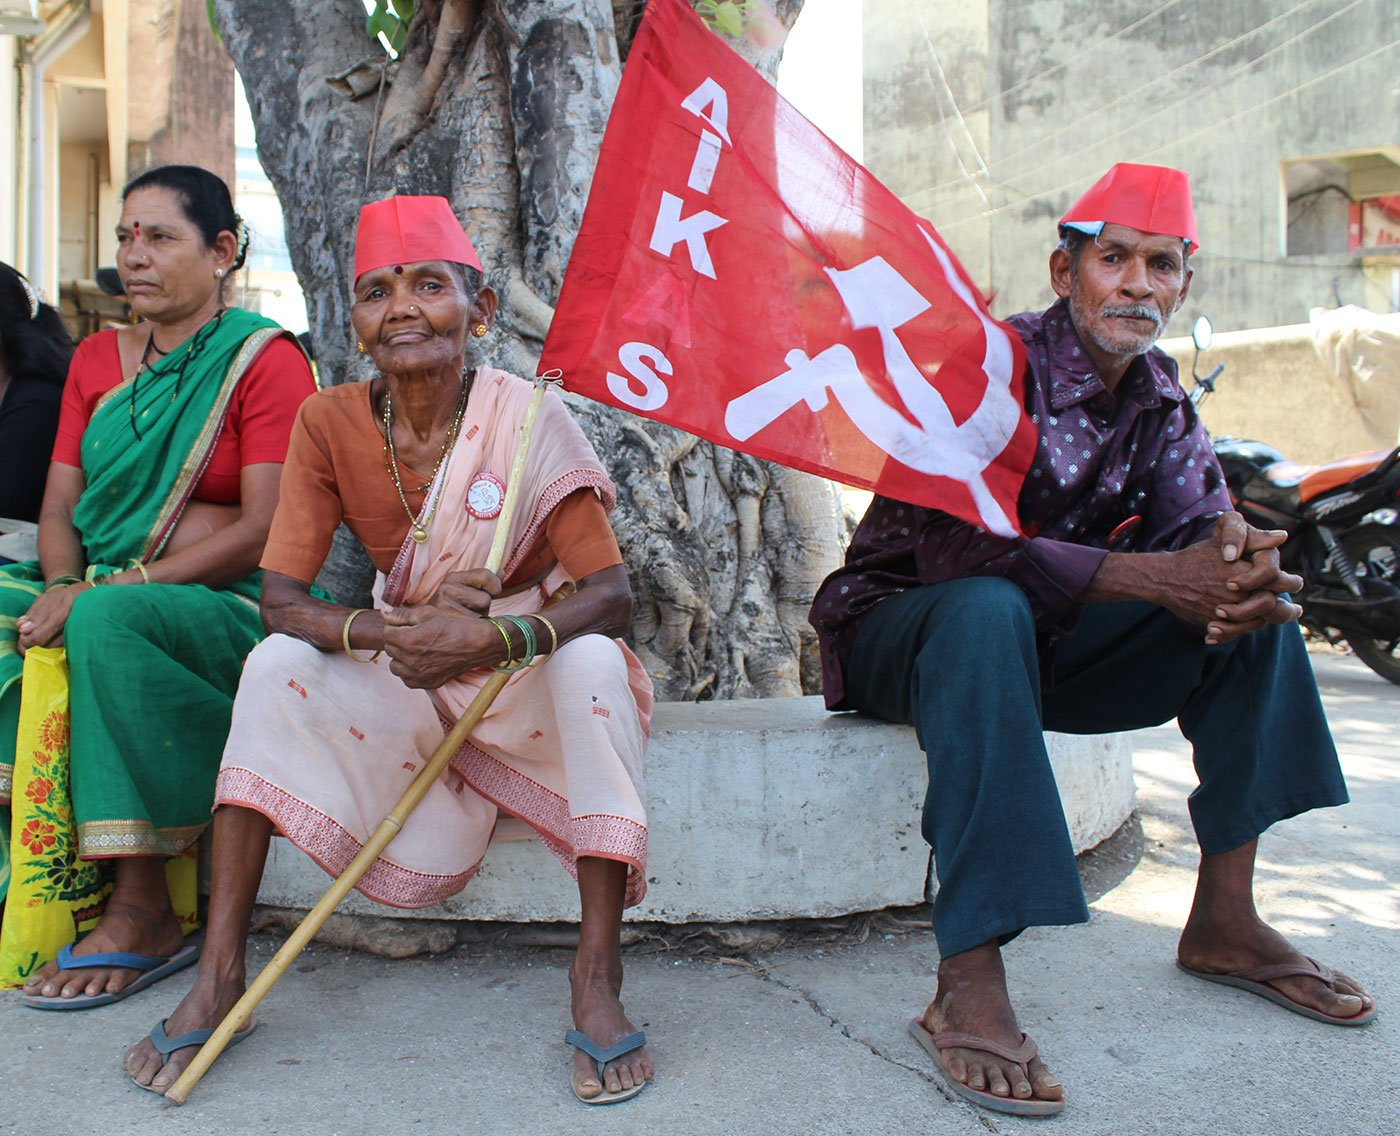 Two women and a man sitting under a tree. One of the women is holding the All India Kisan Sabha flag.